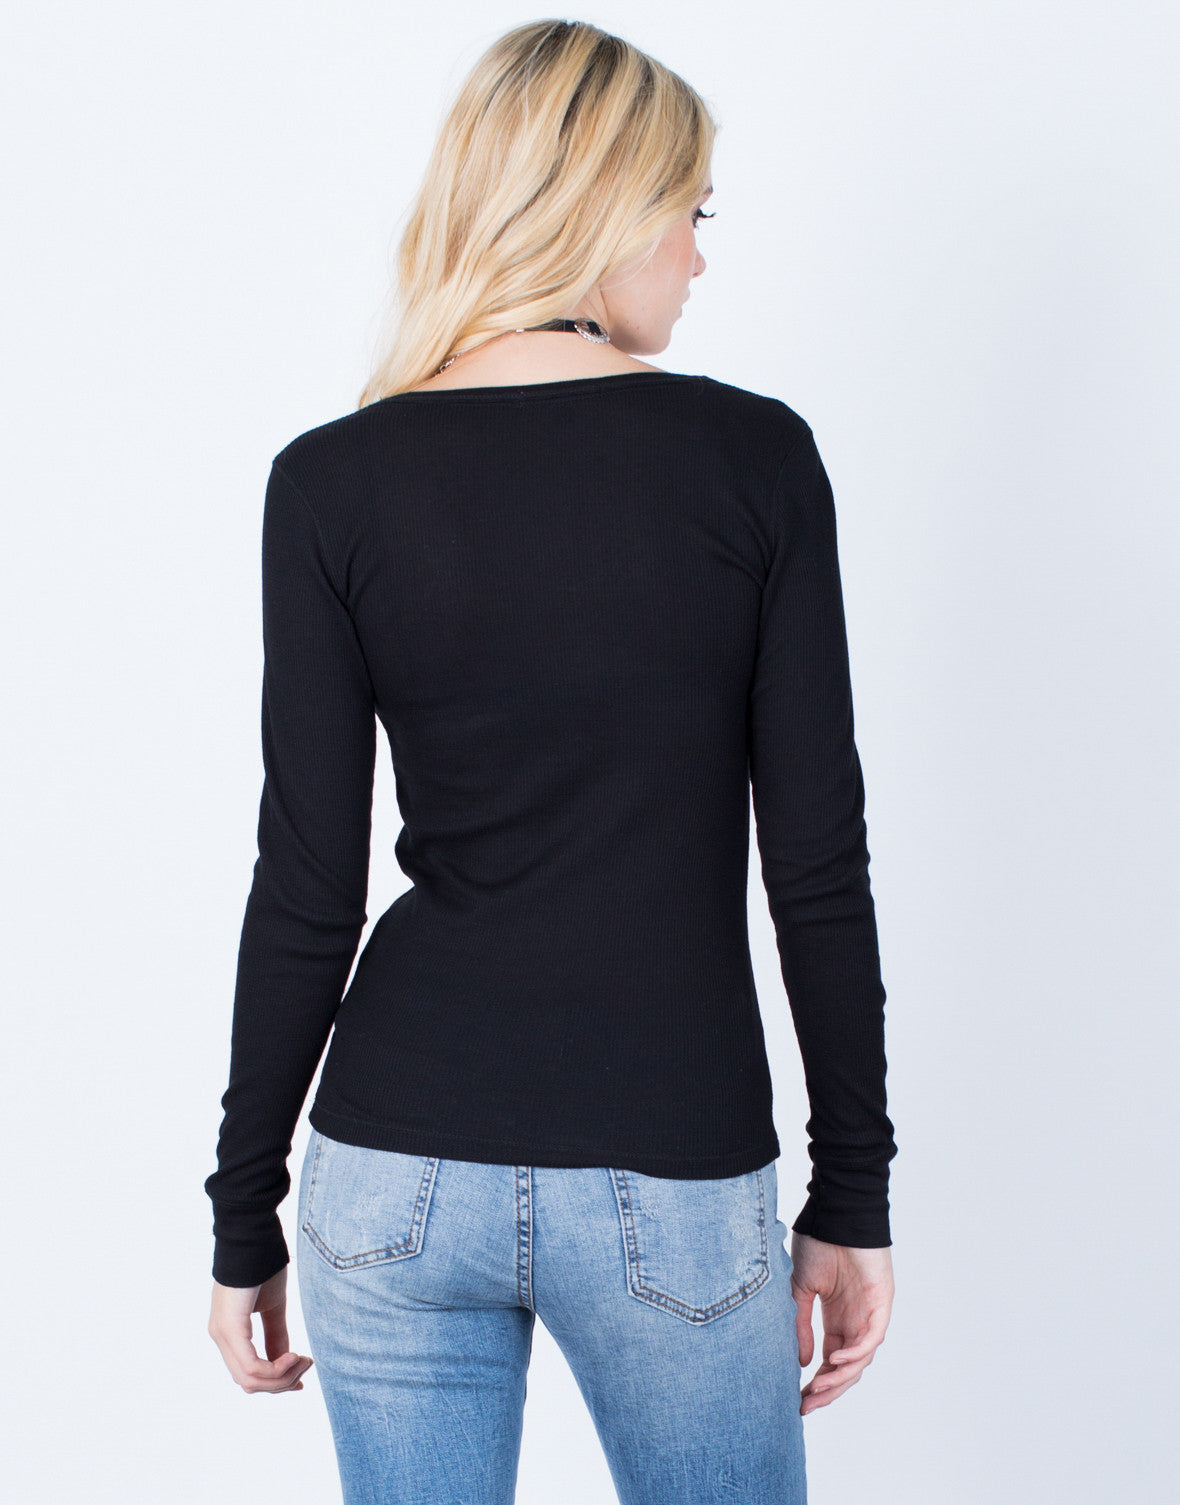 Back View of Soft Waffle Knit Top